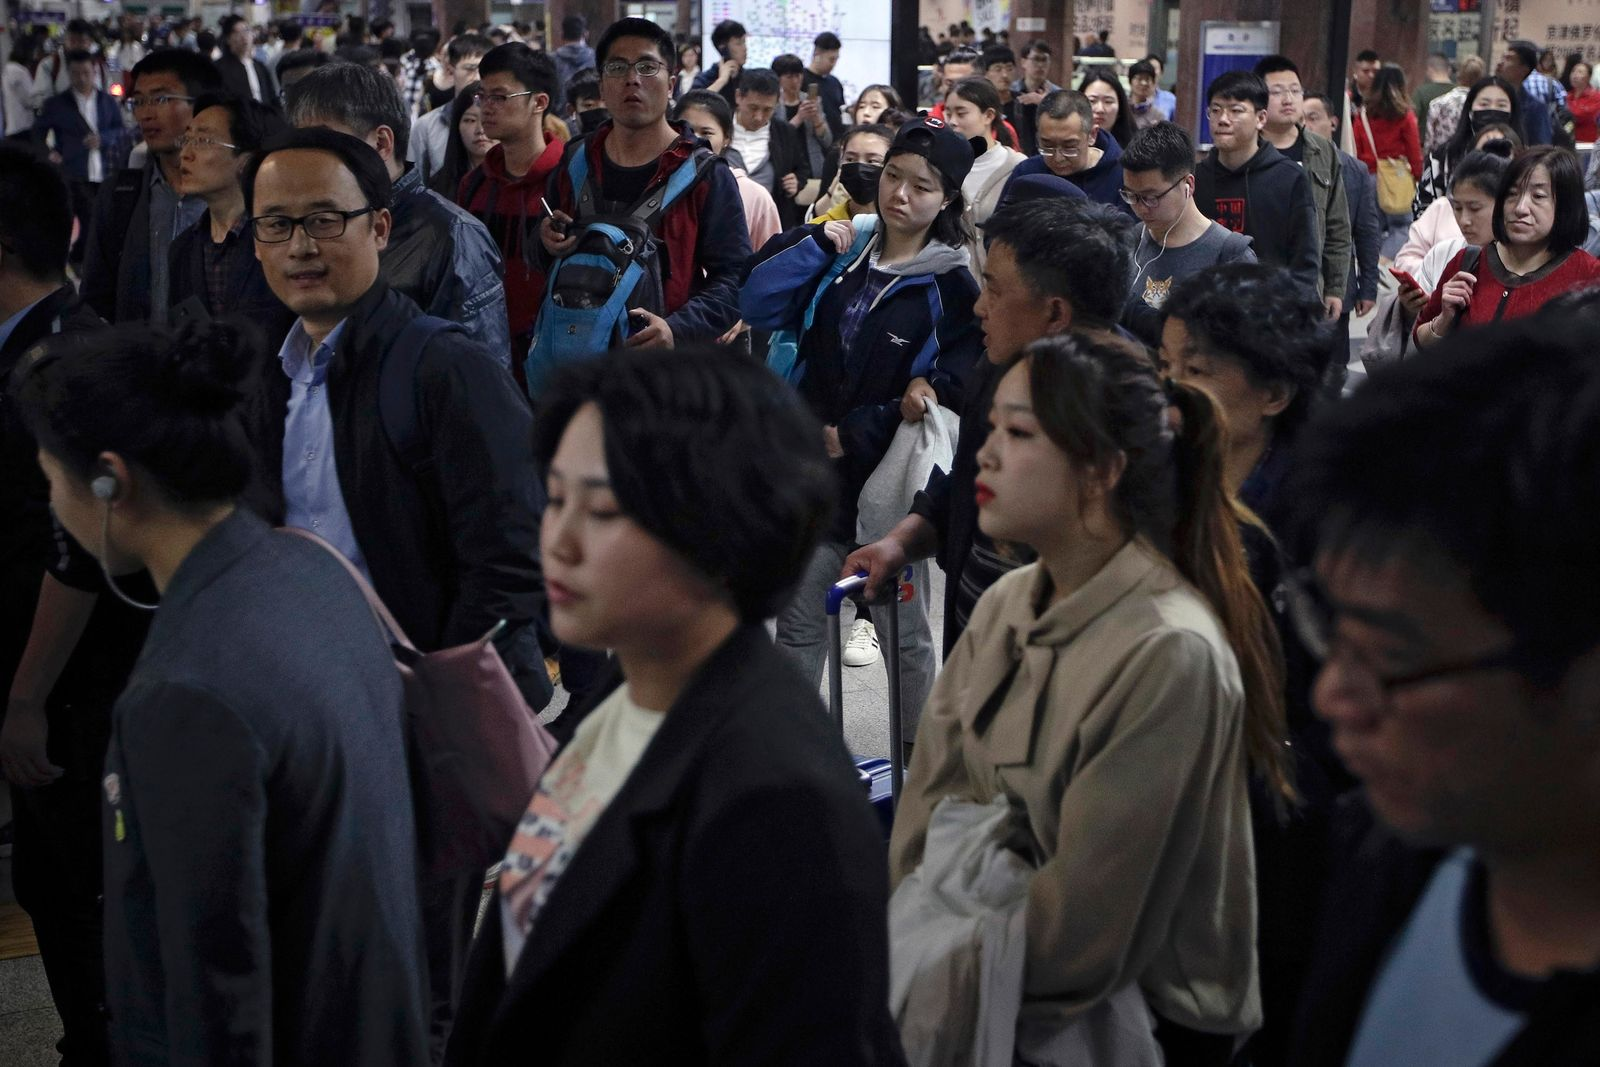 In this Wednesday, April 17, 2019, photo, Chinese people rush to catch their trains at a subway station during the evening rush hour in Beijing. Remarks by the head of Chinese online business giant Alibaba, Ma Jack, one of China's richest men, that young people should work 12-hour days, six days a week if they want financial success have prompted a public debate over work-life balance in the country. (AP Photo/Andy Wong)